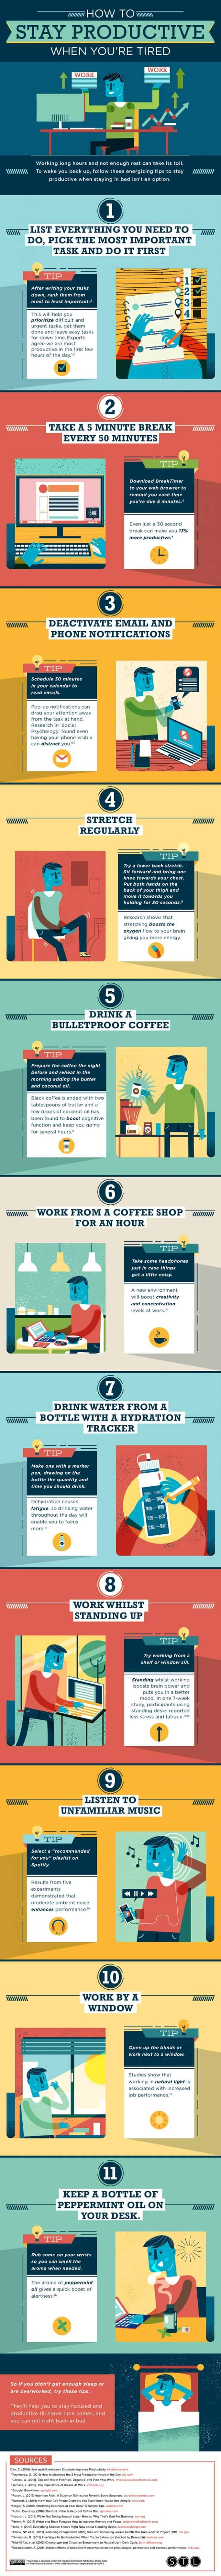 infographic describes how to stay productive when you're tired